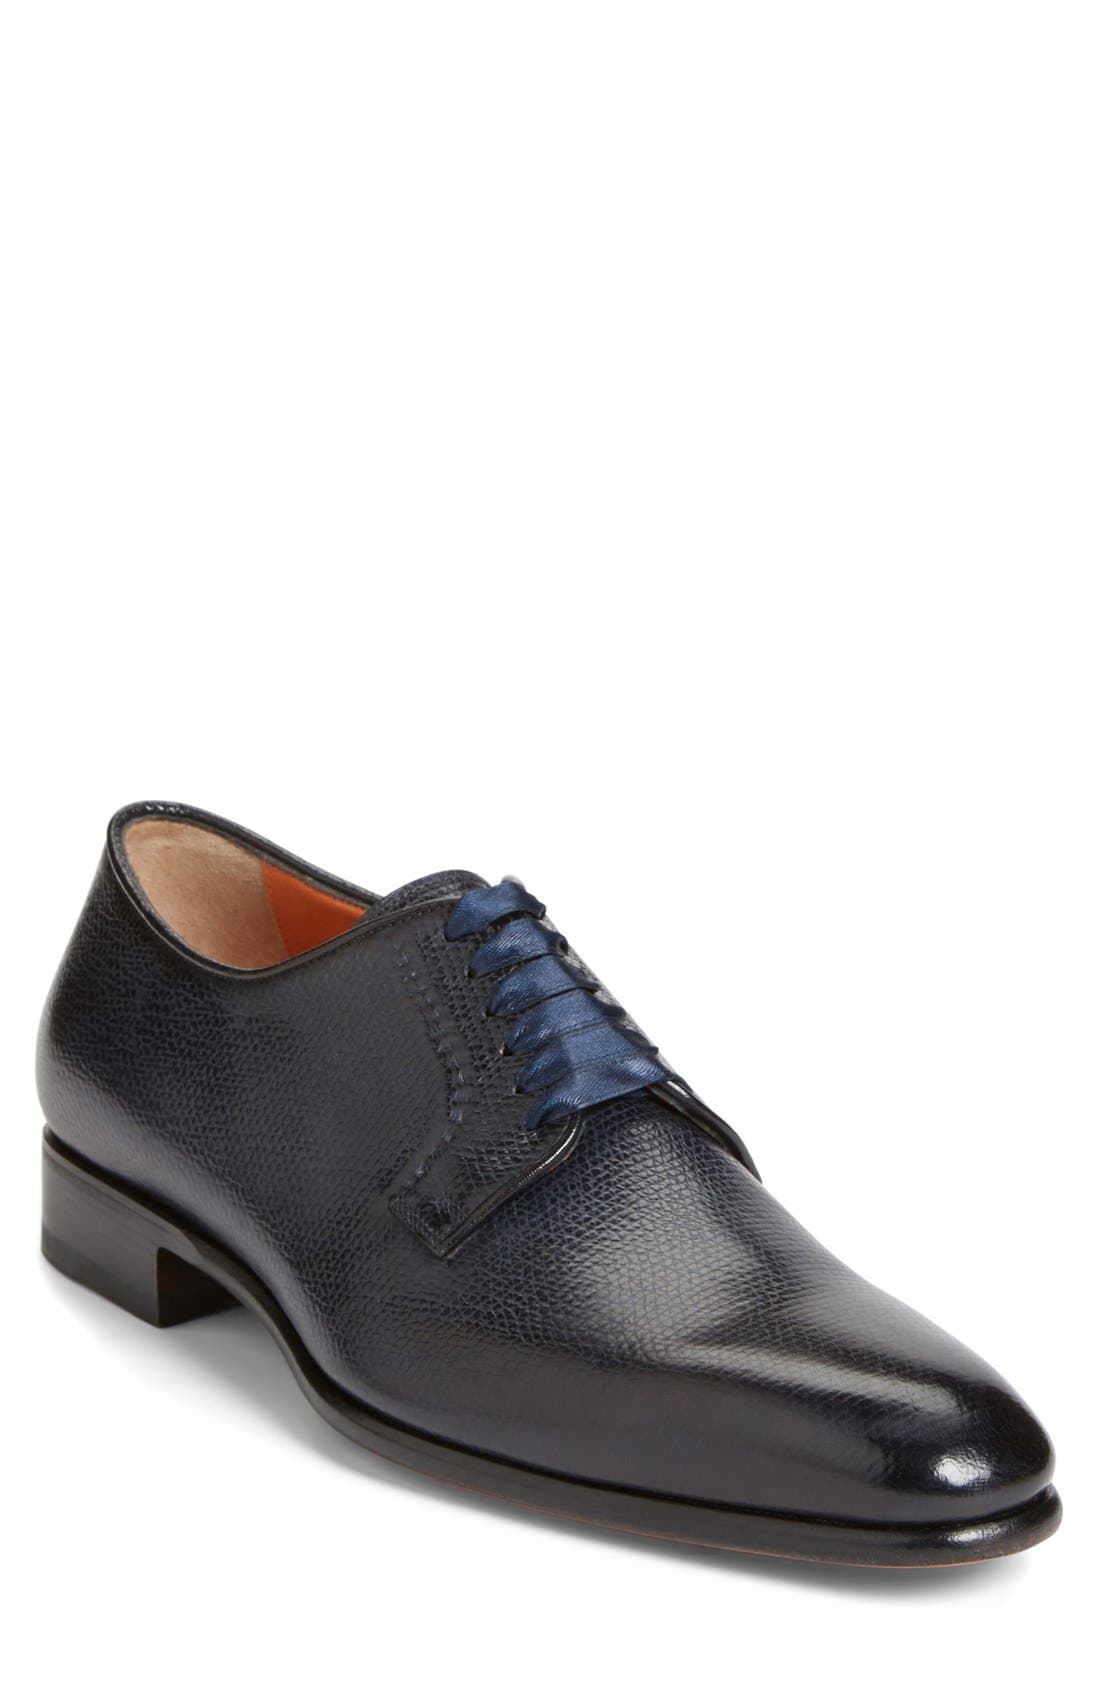 'Chelsey' Plain Toe Oxford,                             Main thumbnail 1, color,                             Navy Leather